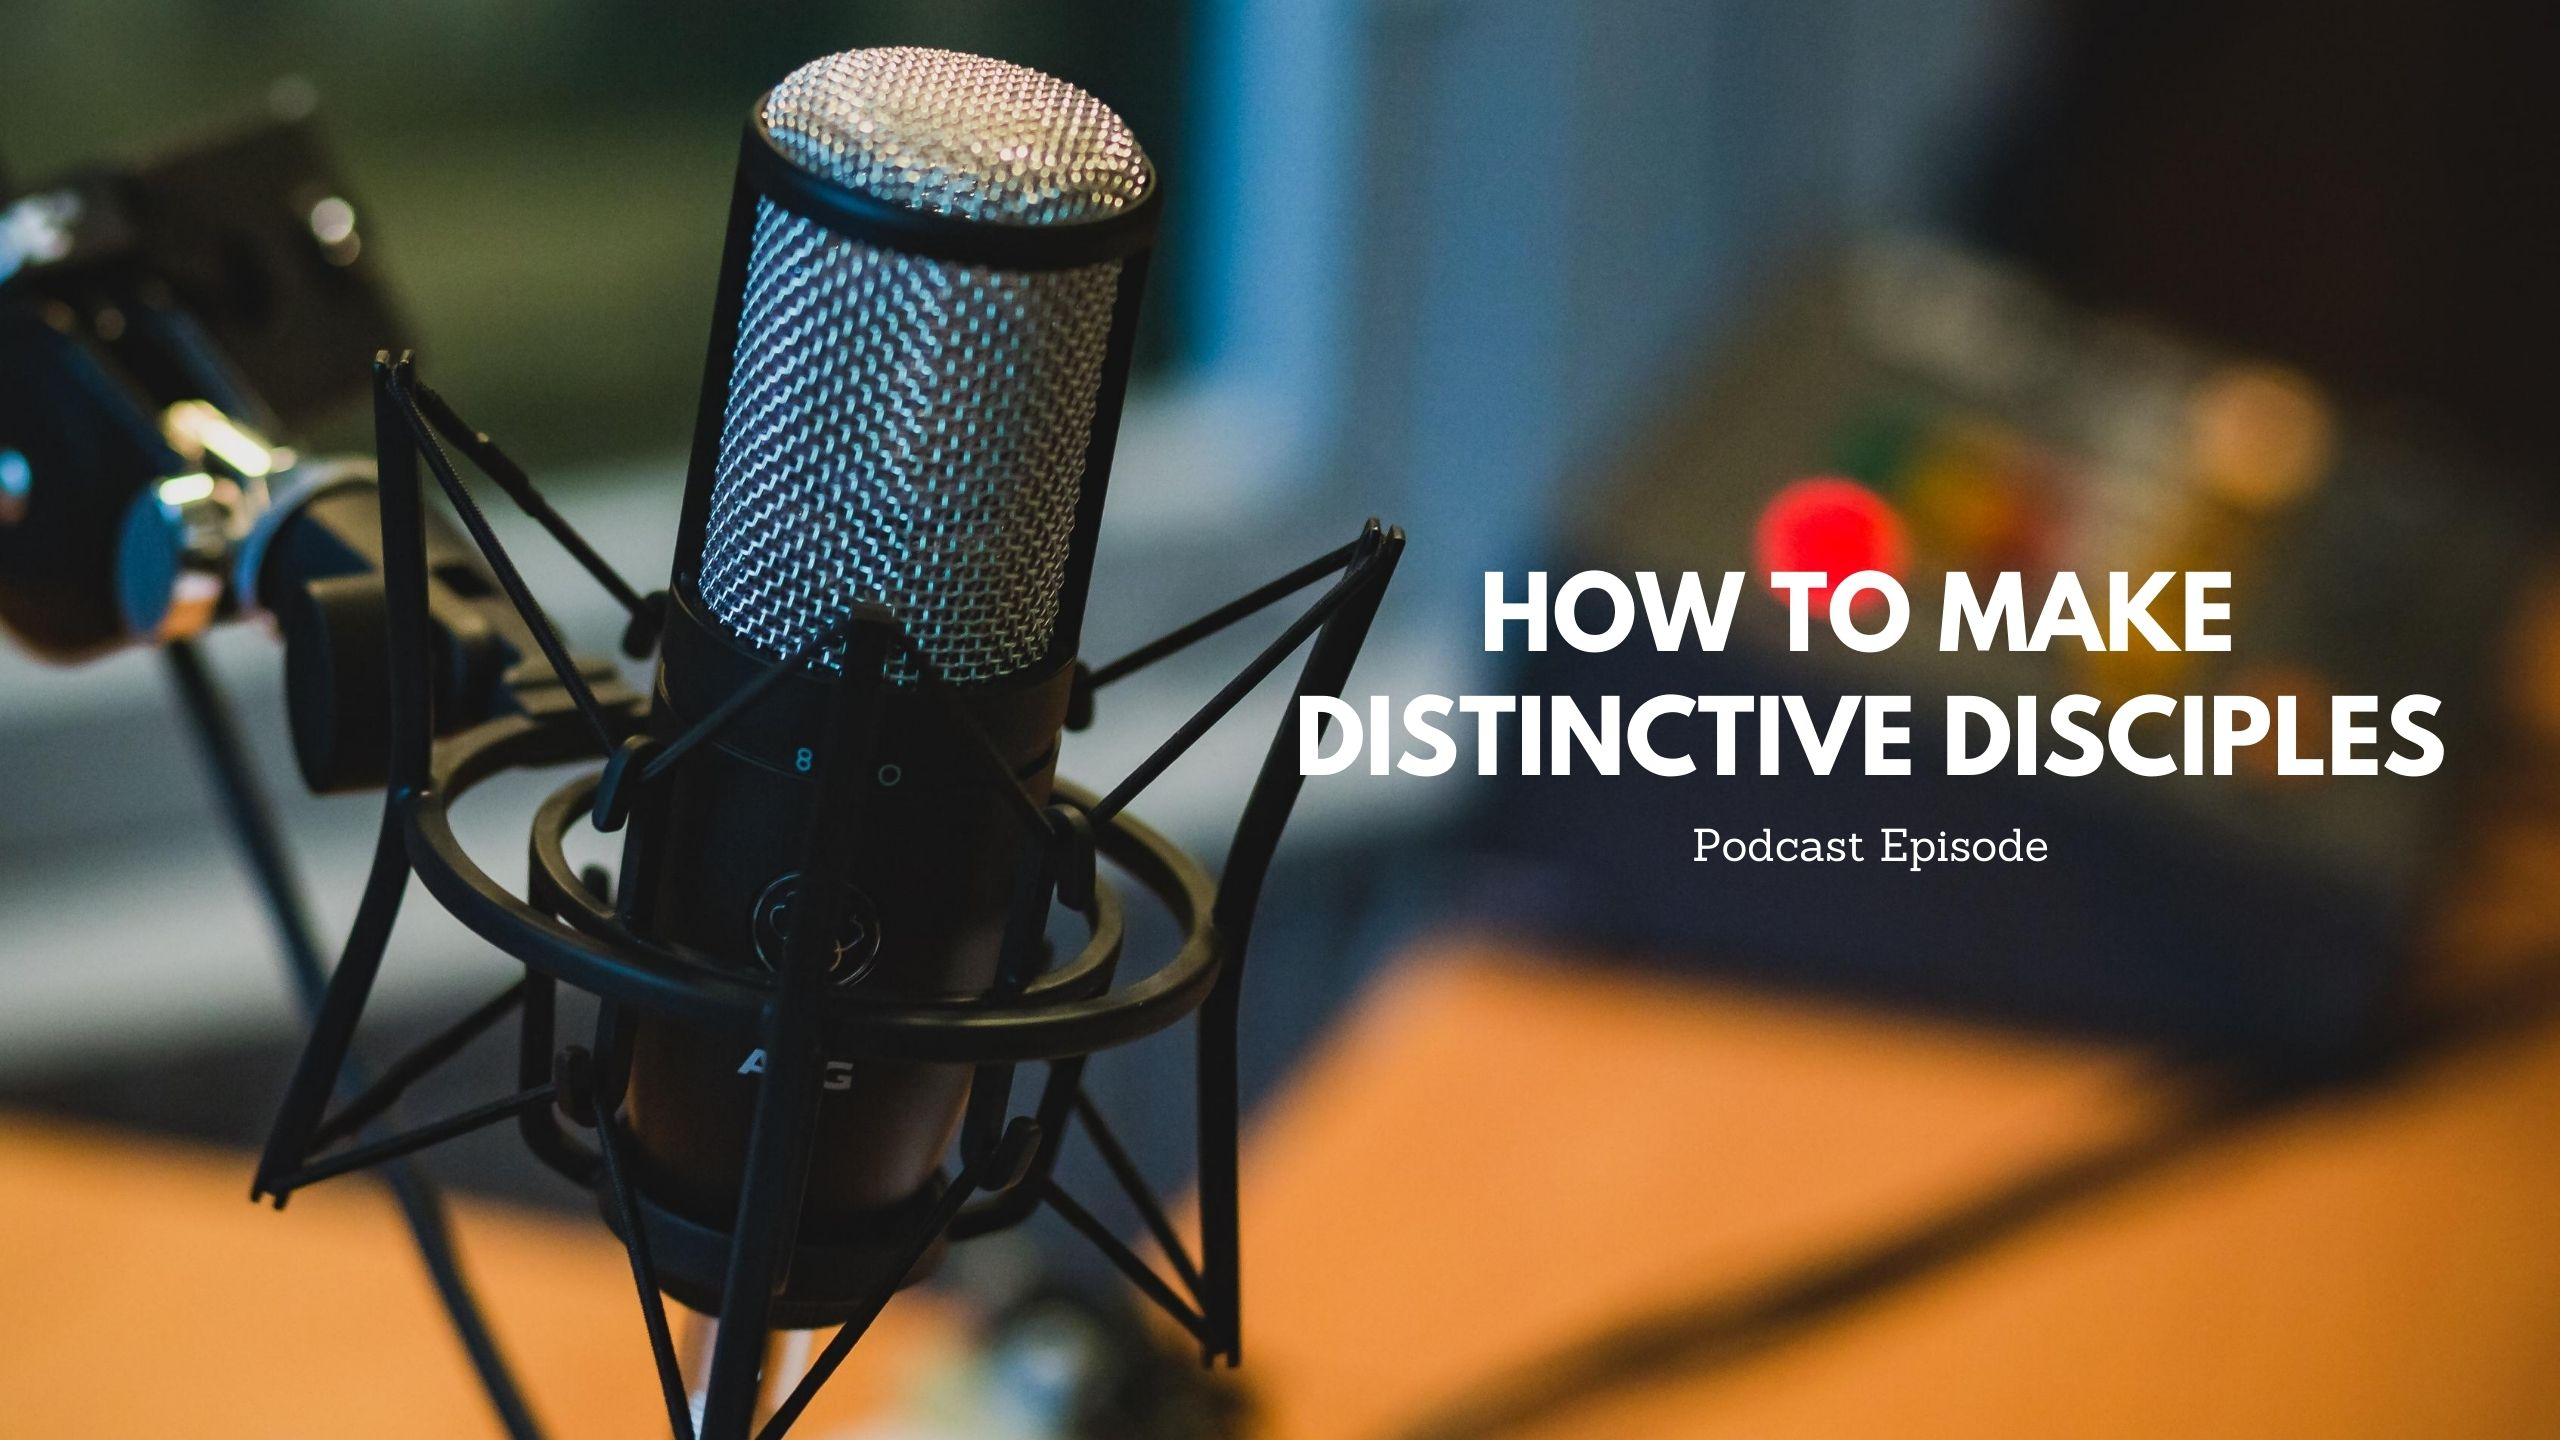 How to Make Distinctive Disciples